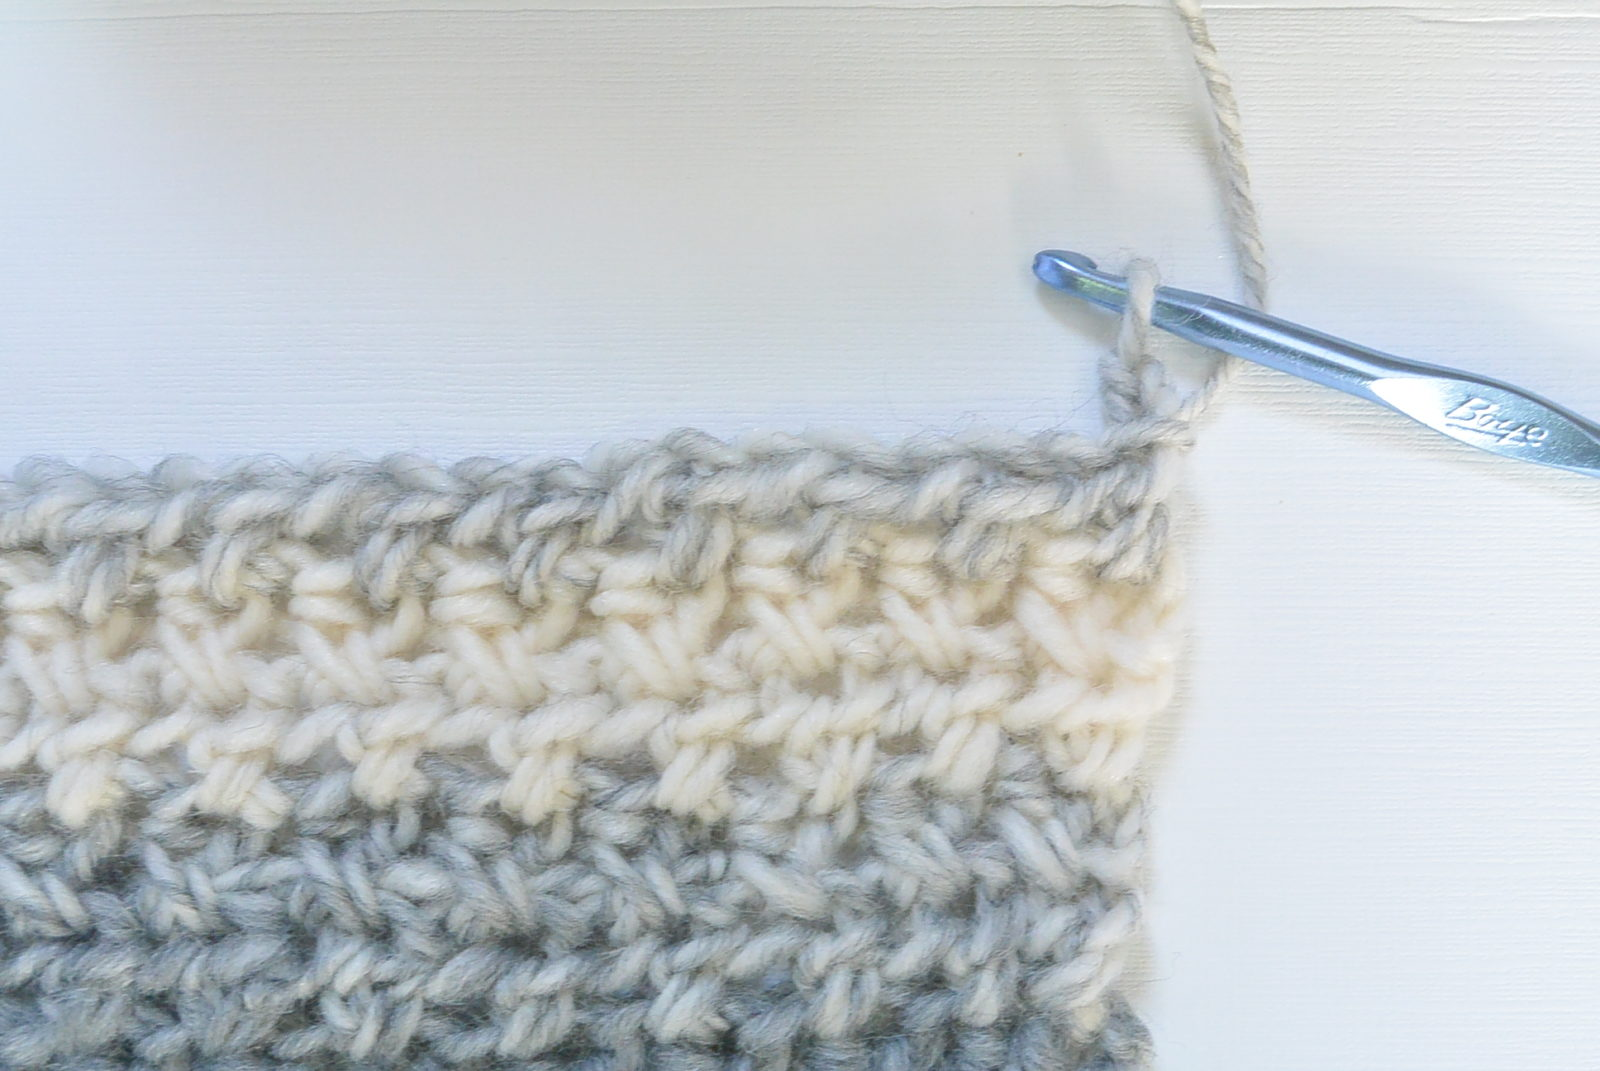 Crochet Stitches Hdc : Crossed Half Double Crochet Stitch Tutorial - Mama In A Stitch